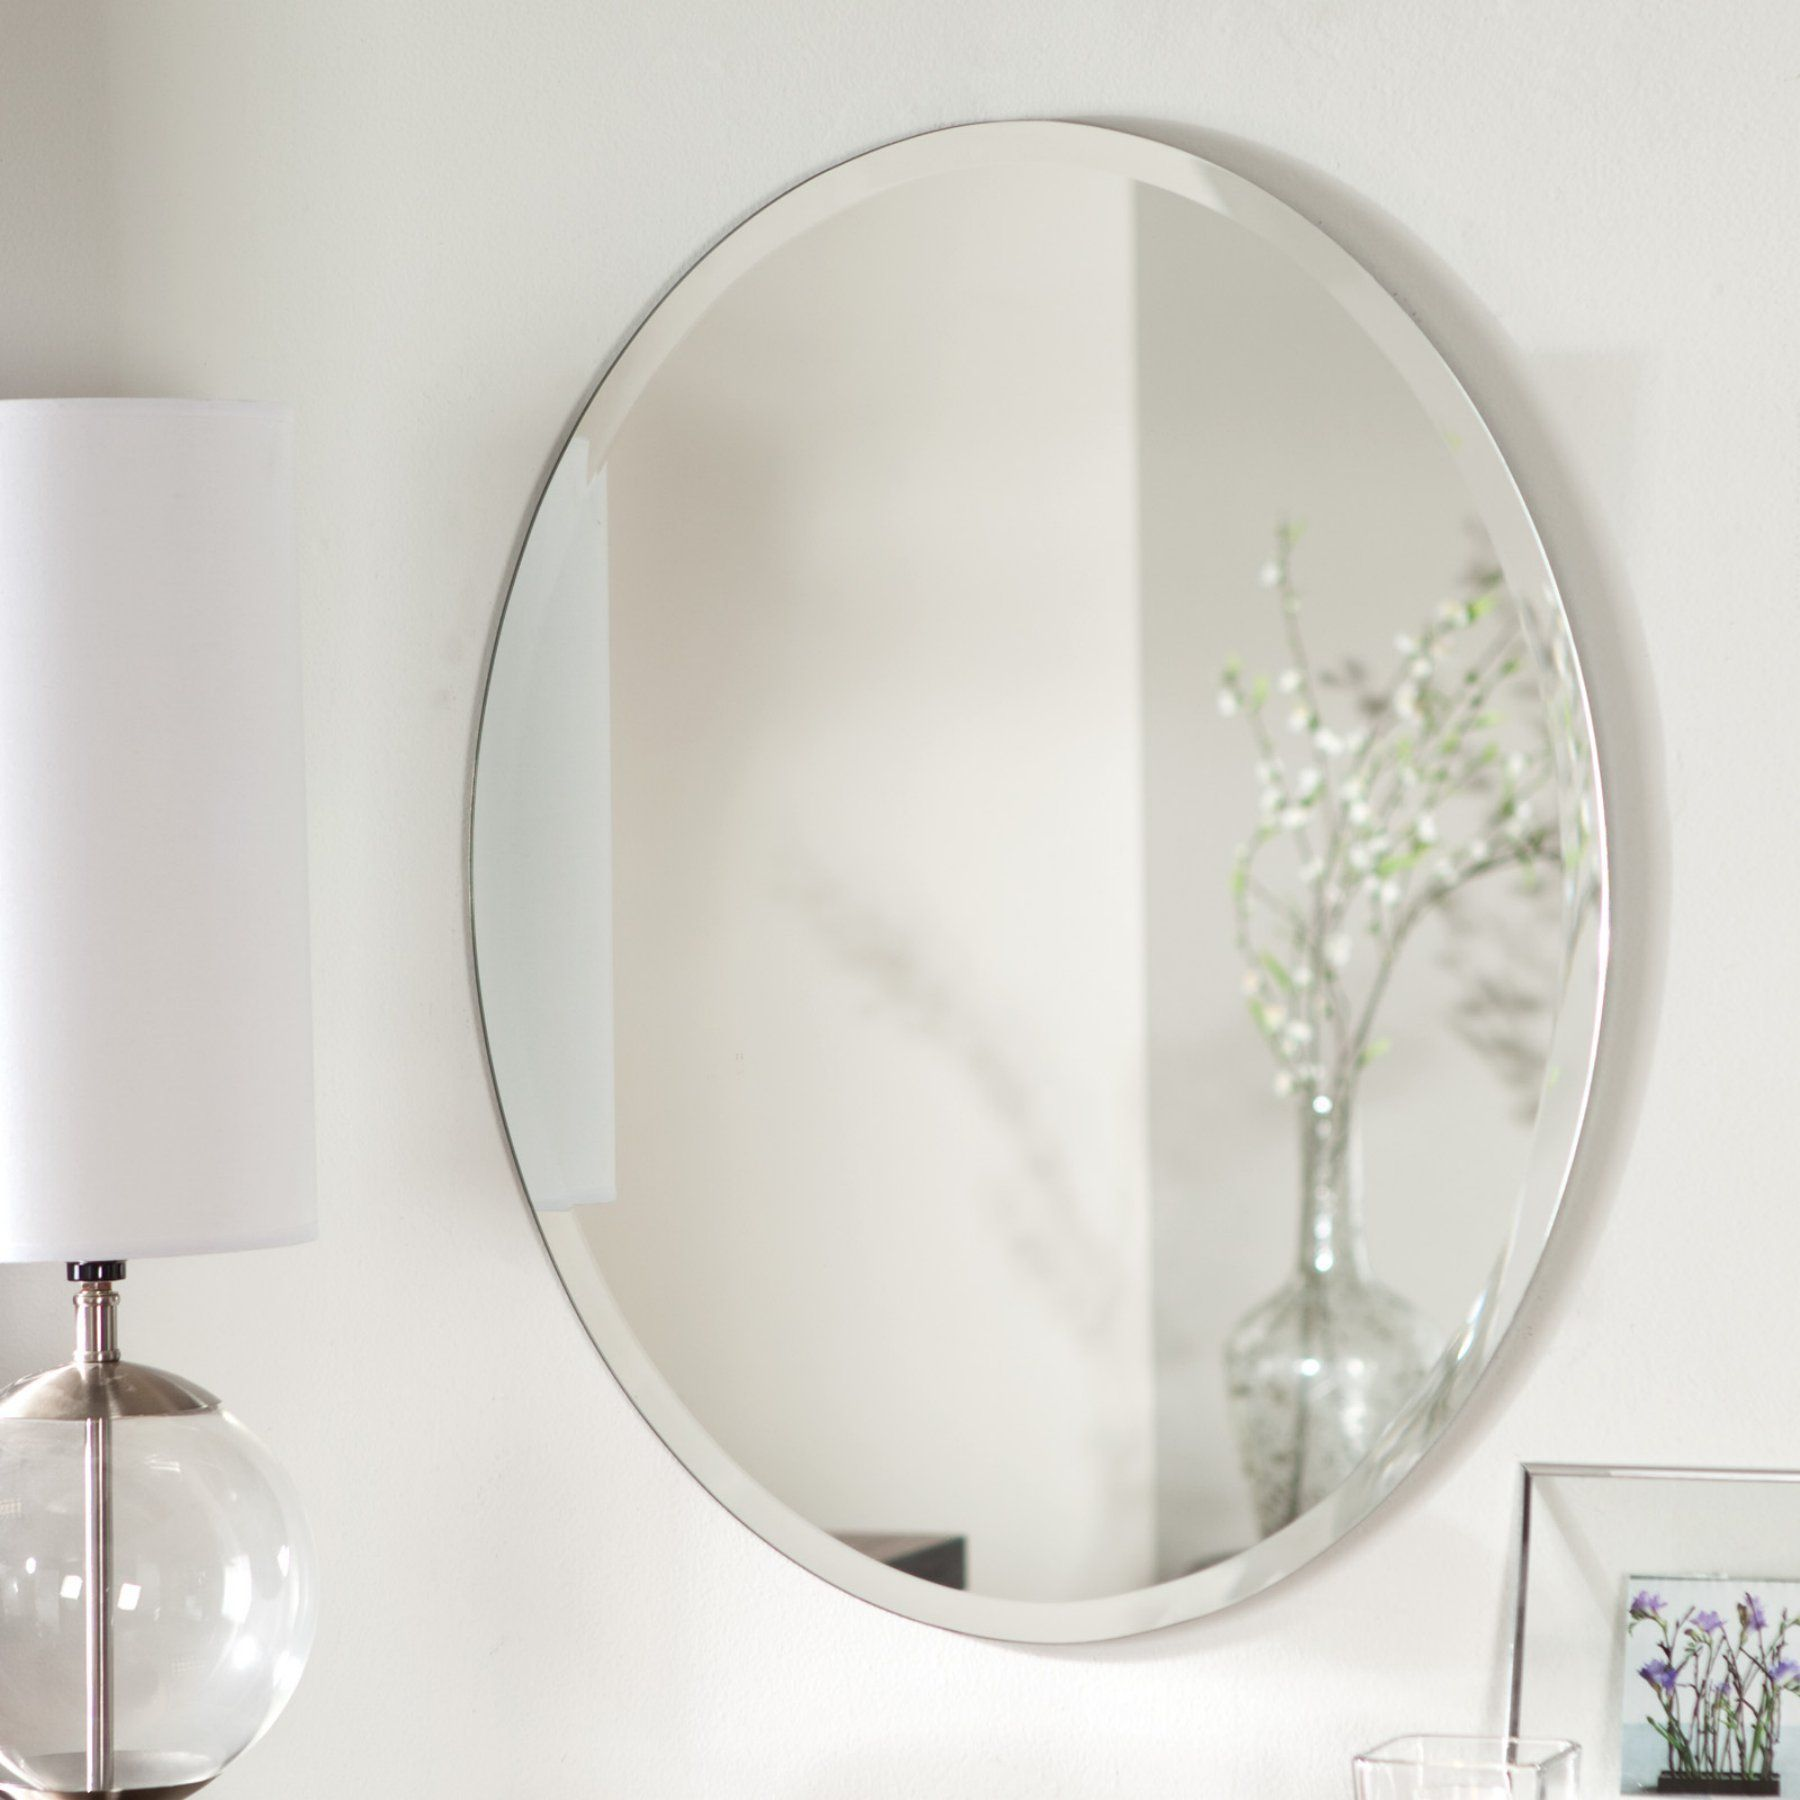 DÃ Cor Wonderland Odelia Oval Bevel Frameless Wall Mirror 22w X 28h In